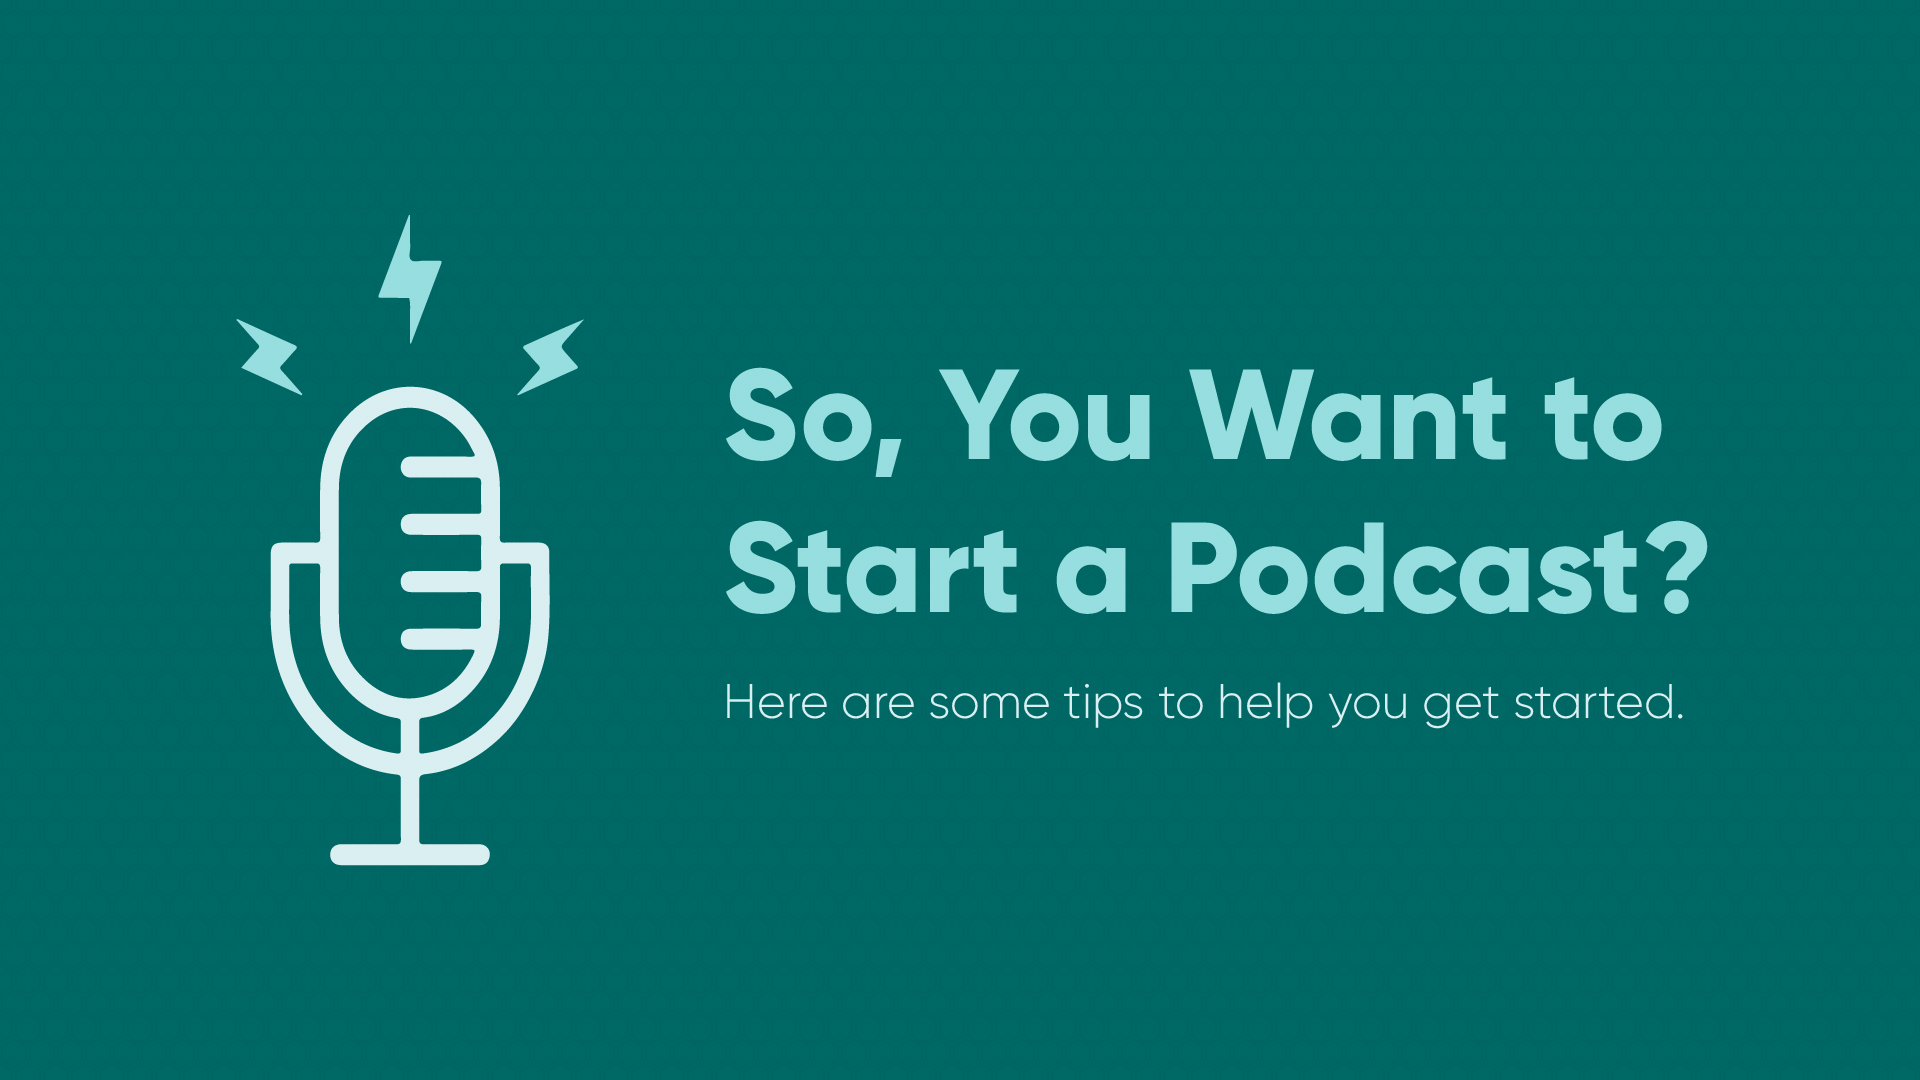 So, You Want To Start a Podcast?